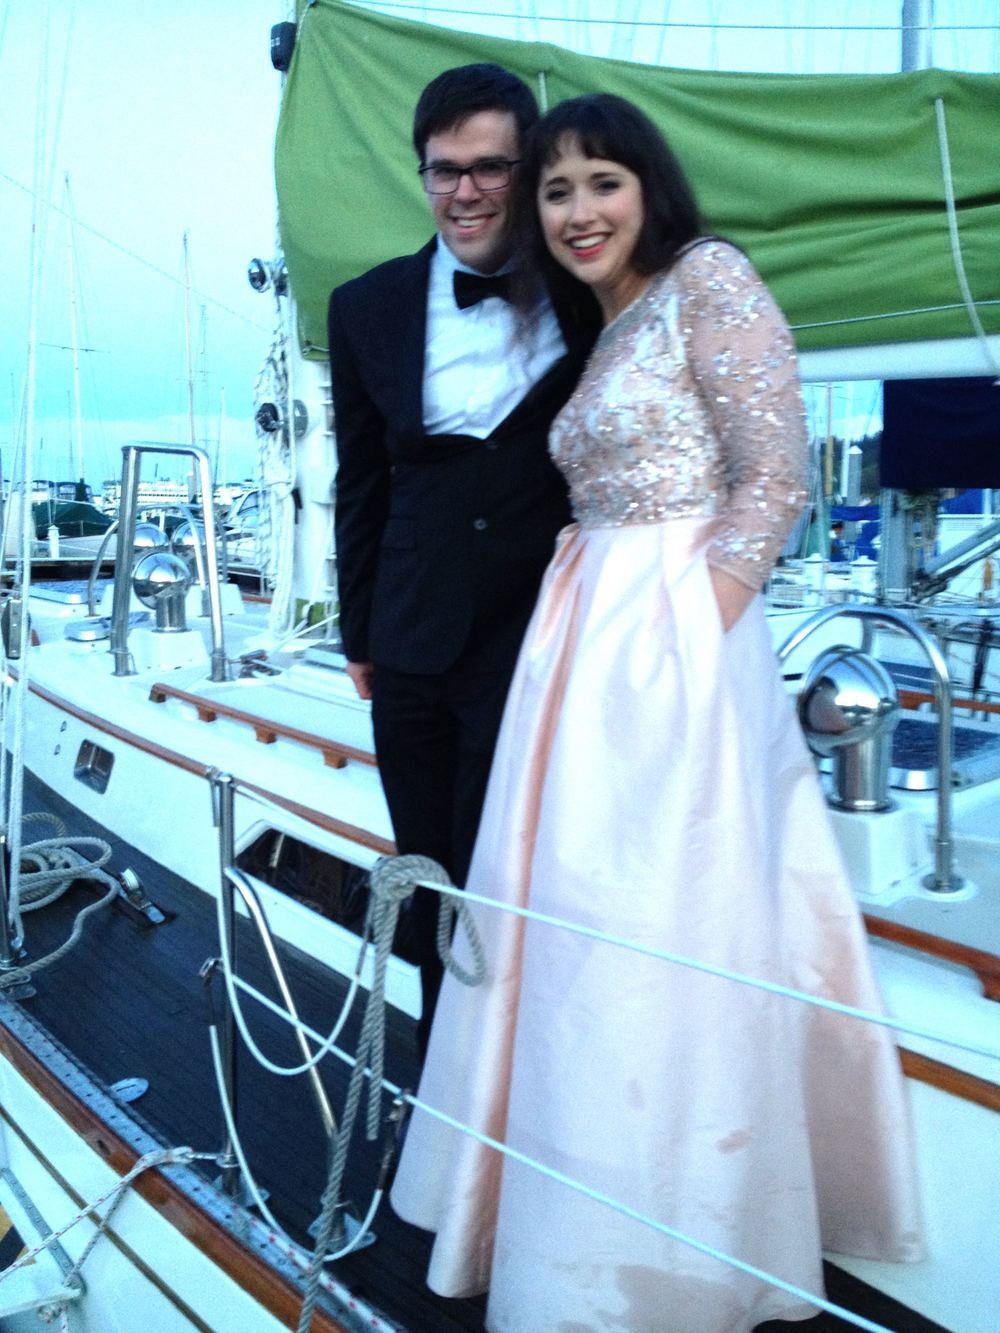 Lovely Micaela and the dapper, debonair Josh start their voyage!